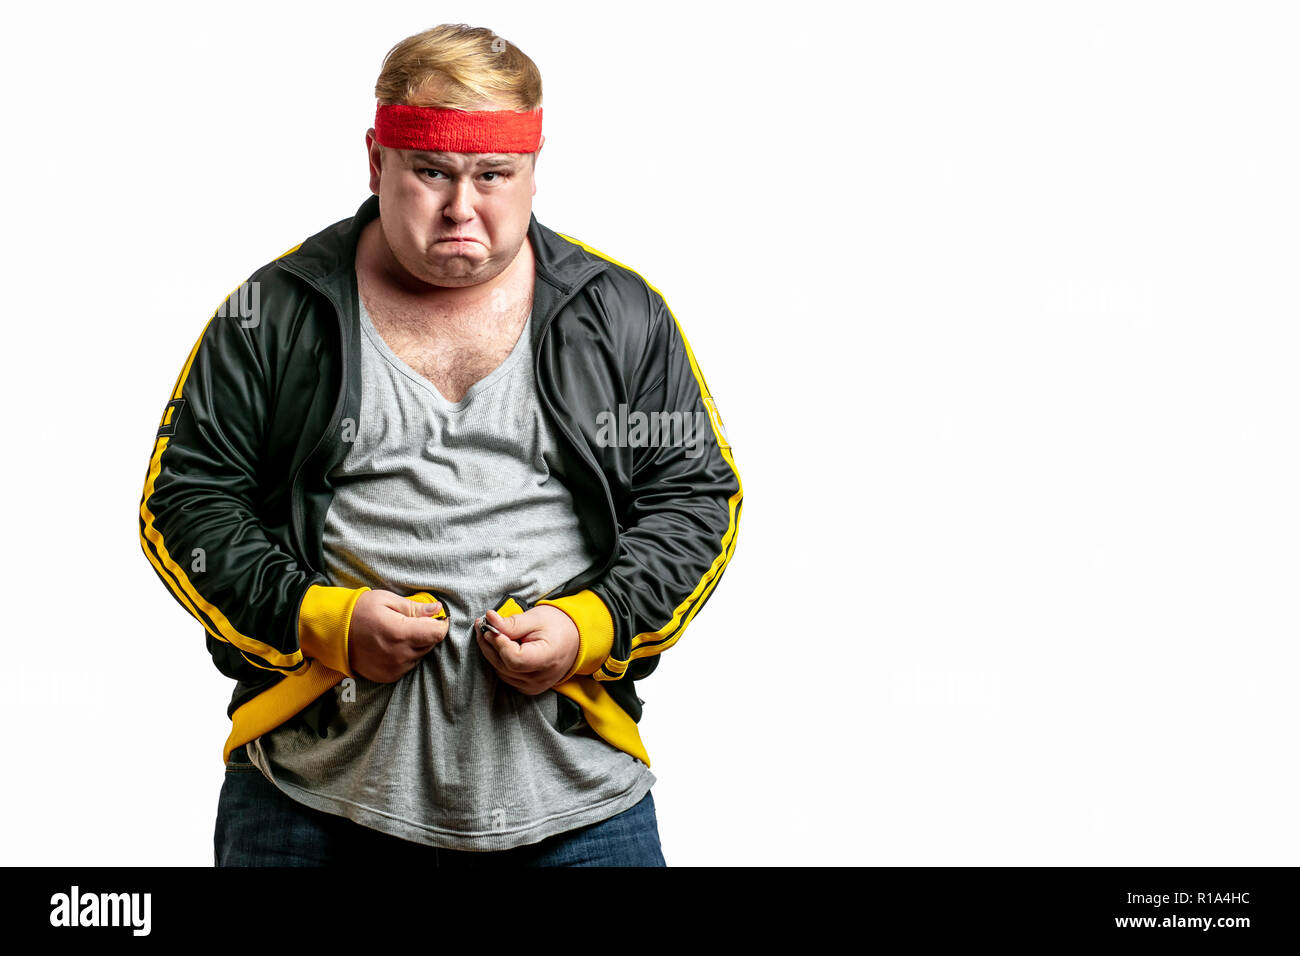 Middle age man with big belly trying to fasten spot jacket - Stock Image